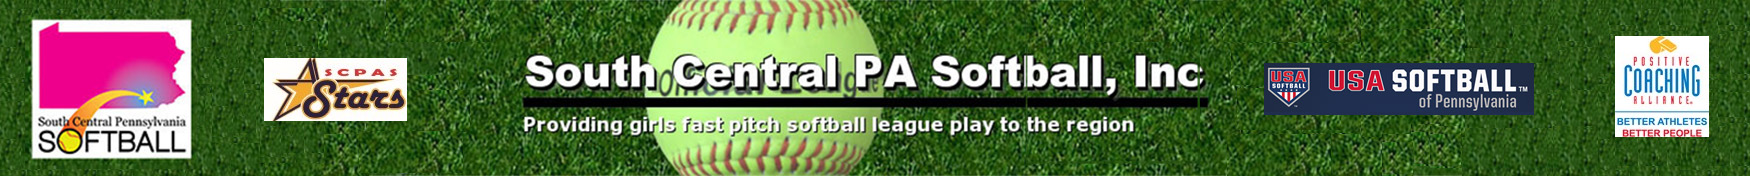 South Central PA Softball, Inc, Softball, Run, Field